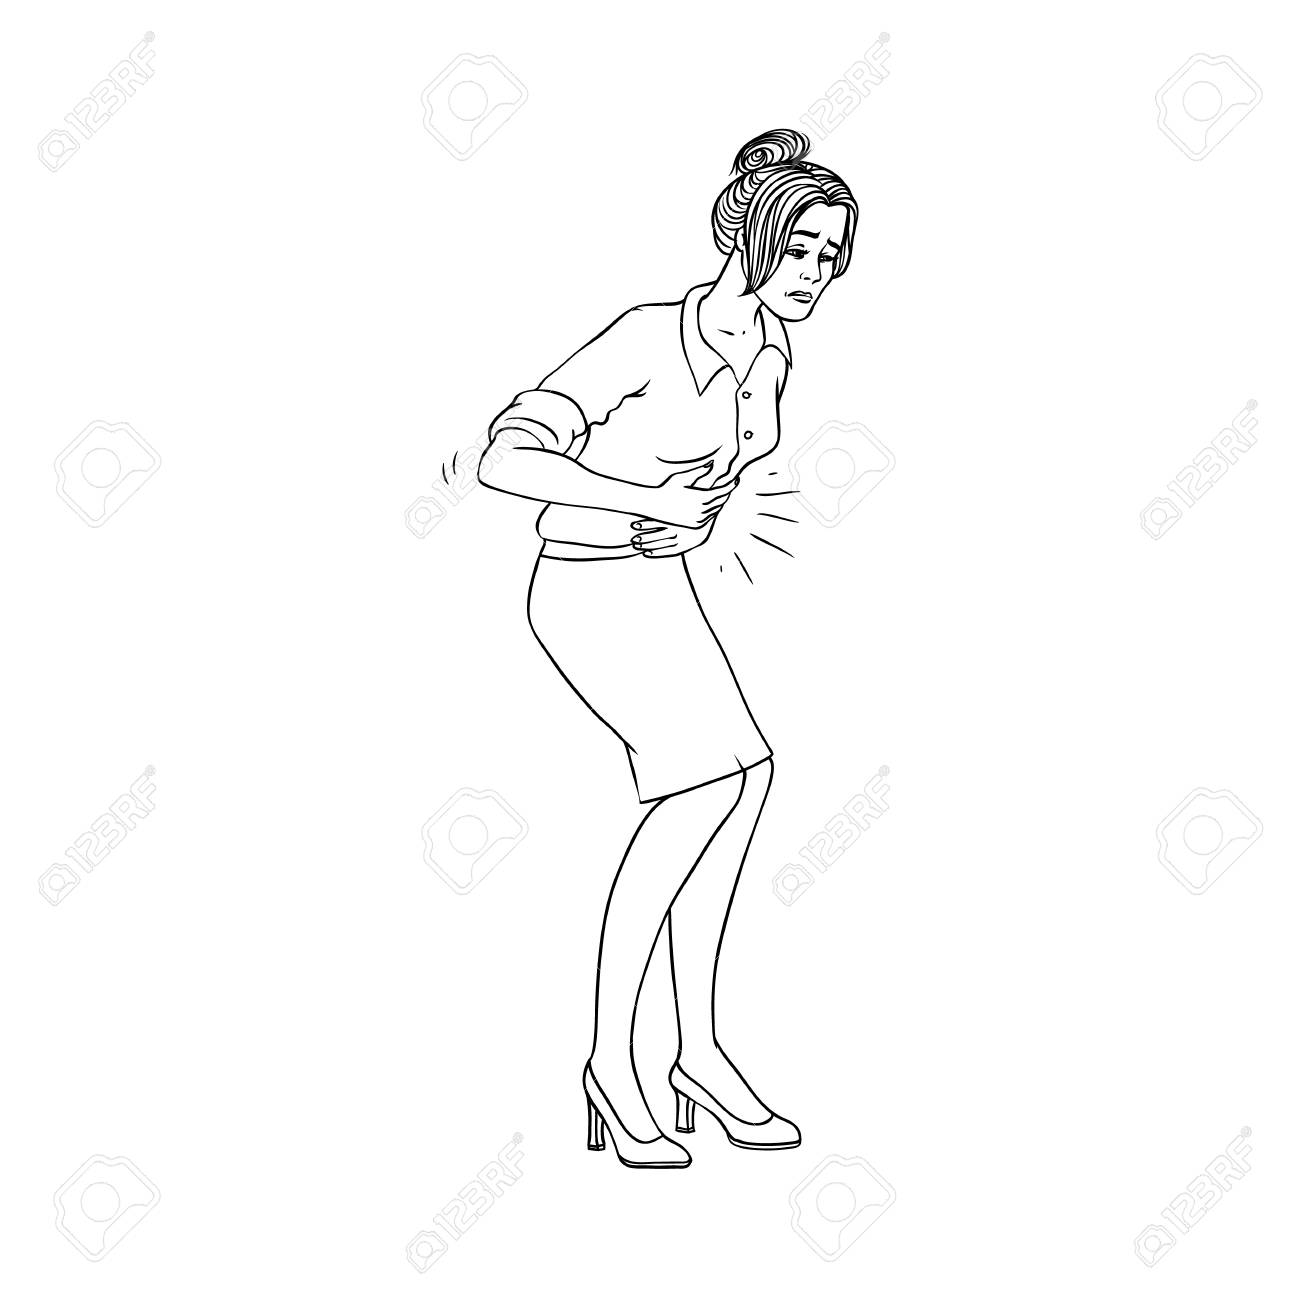 young woman with stomachache isolated on white background black royalty free cliparts vectors and stock illustration image 114967837 young woman with stomachache isolated on white background black